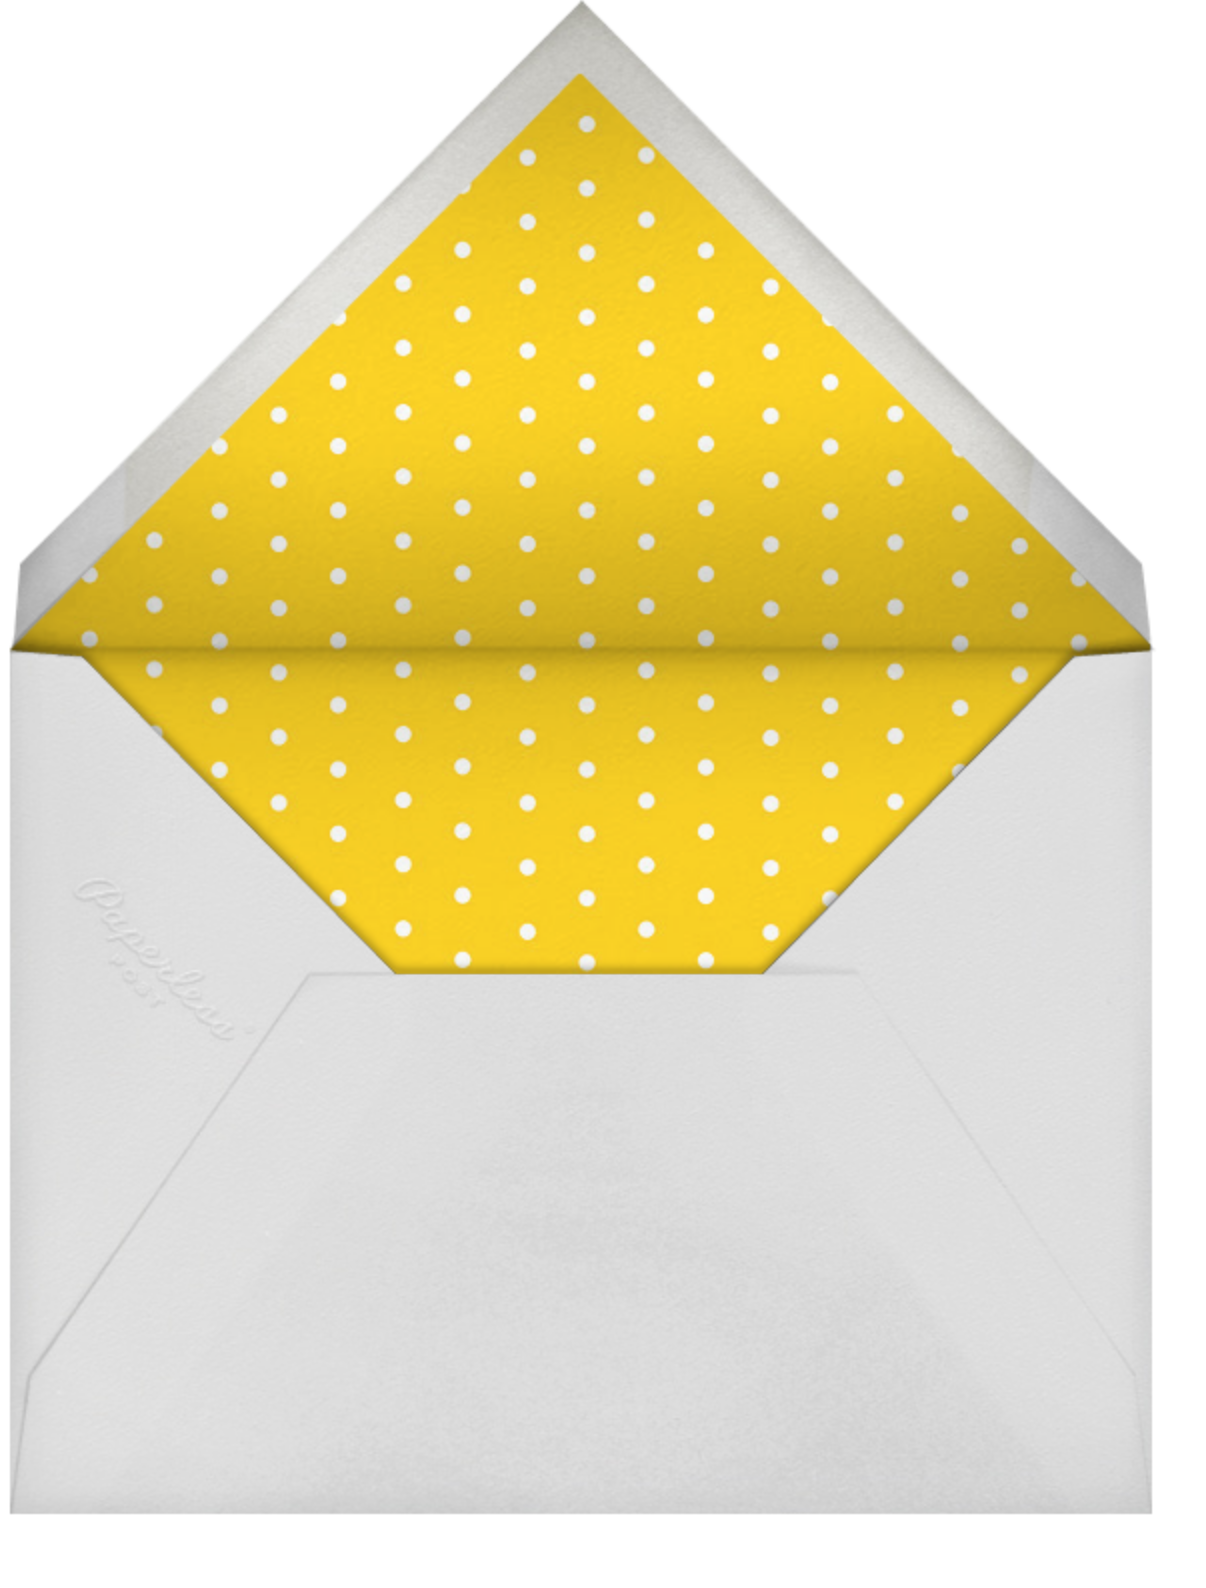 Hot Air Balloon Cluster - White/Mustard - Paperless Post - Retirement party - envelope back